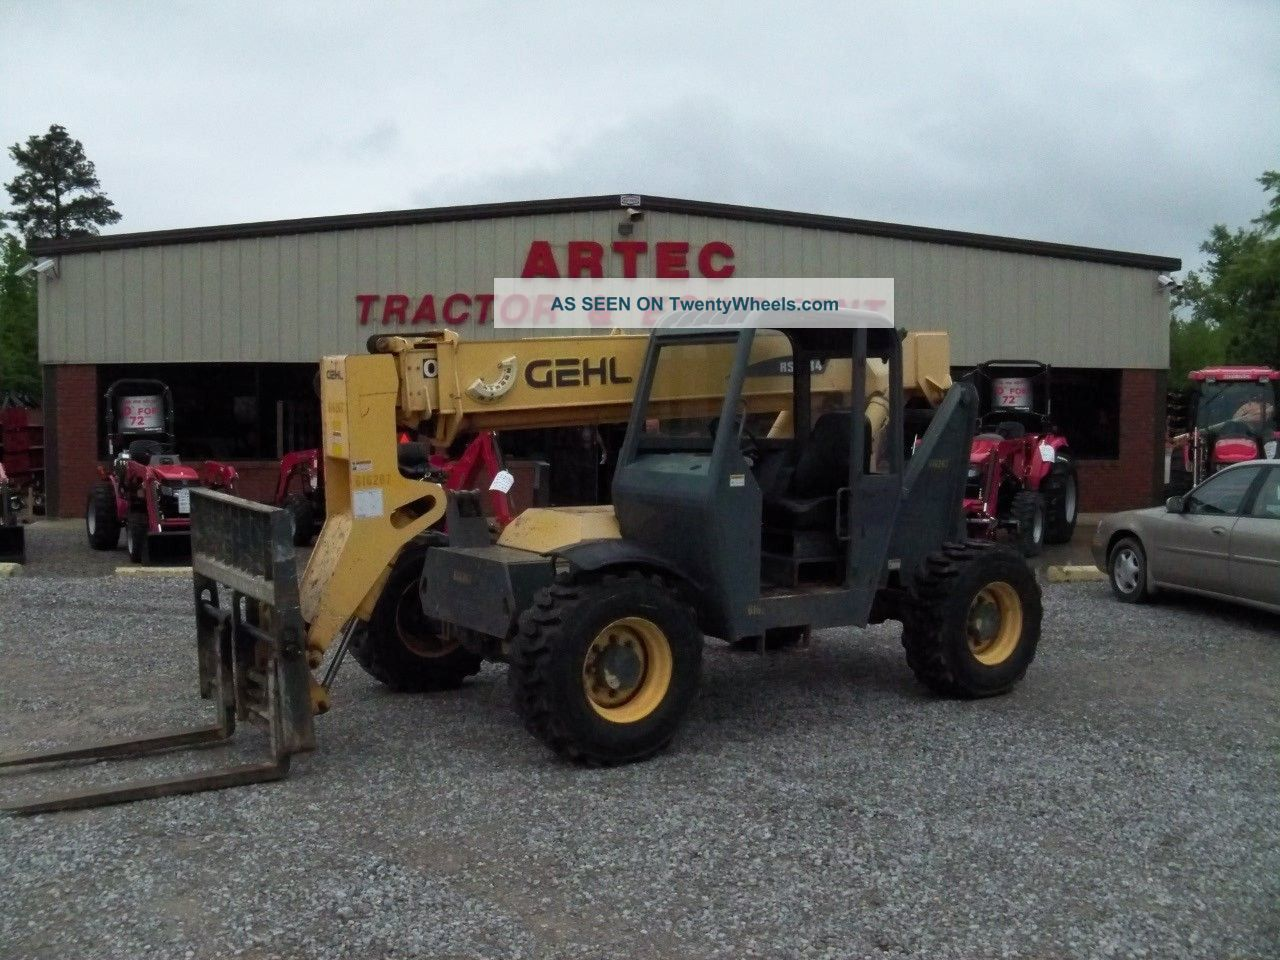 2006 Gehl Rs5 - 34 Telescopic Forklift - Loader Lift Tractor - Foam Filled Tires Forklifts & Other Lifts photo